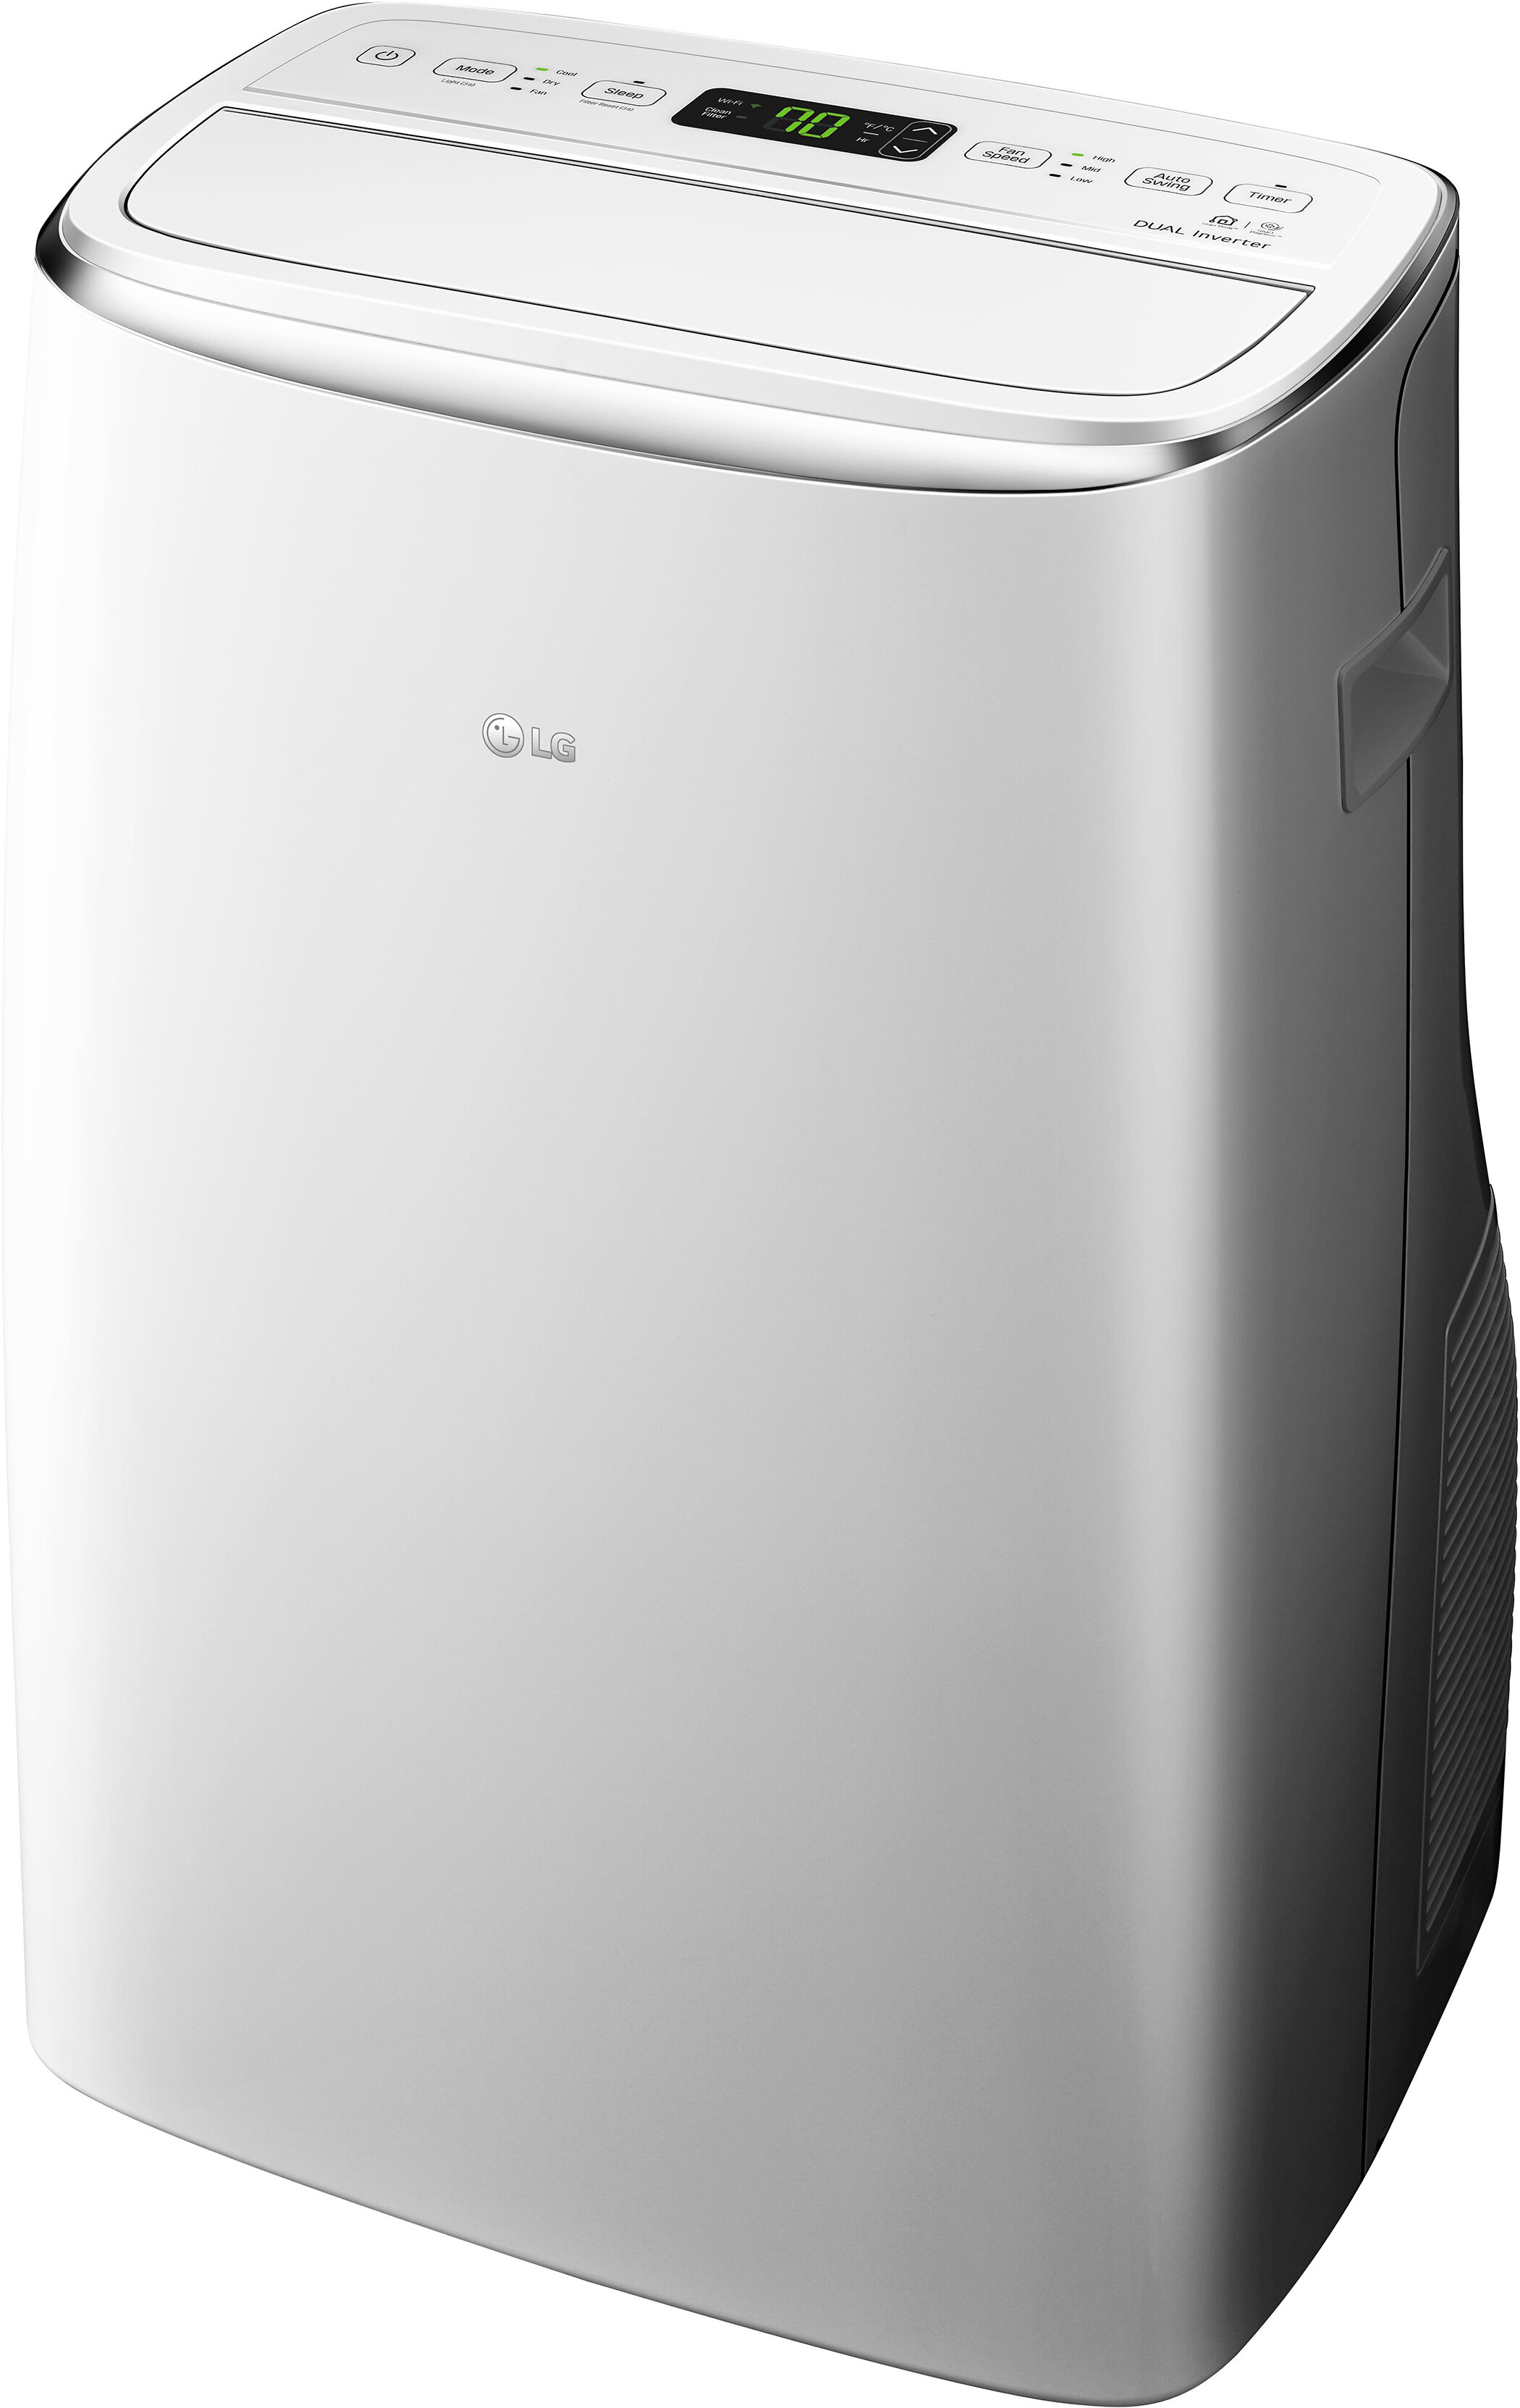 Keystone Lg Dual Inverter 10 000 Btu Portable Air Conditioner With Remote And Wifi Control Reviews Wayfair